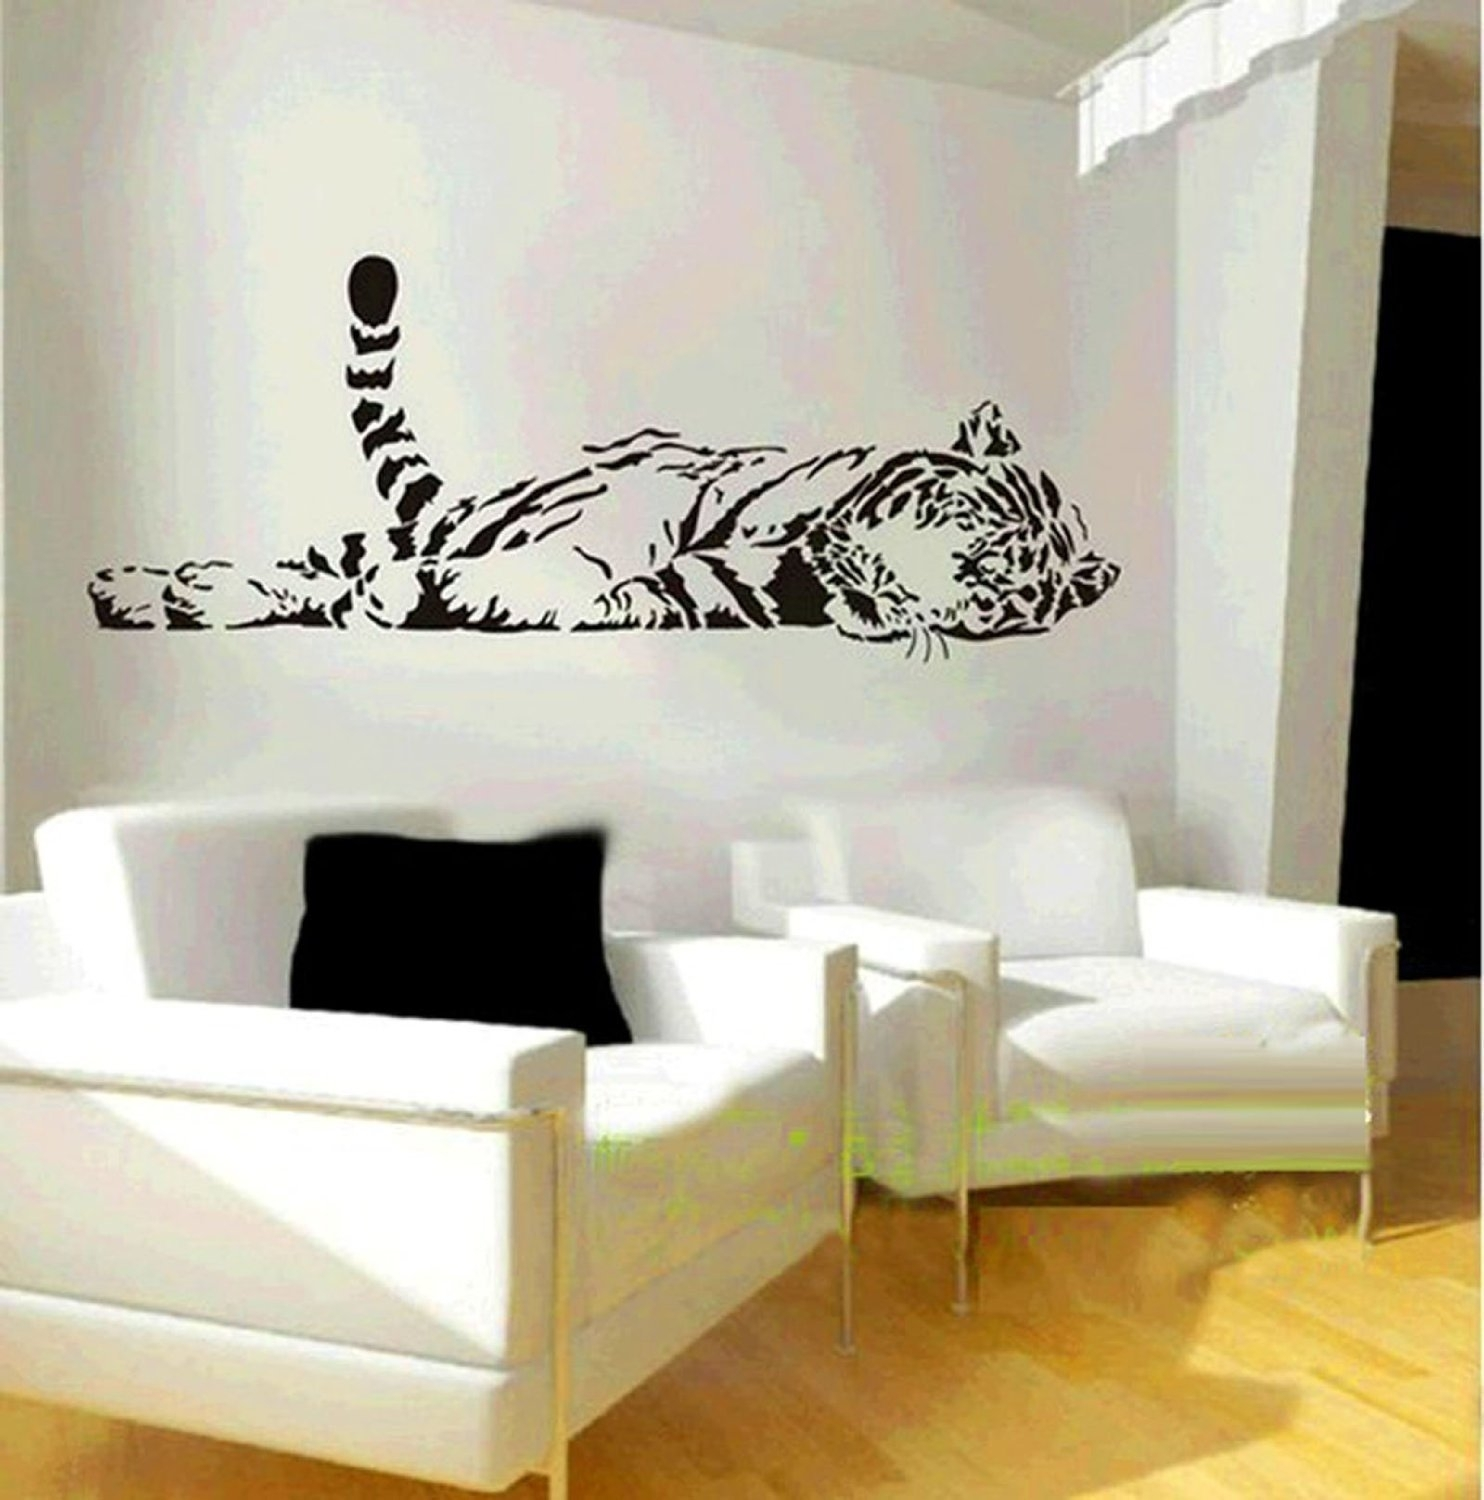 Amazon: Animal Wild Zoo Lying Tail Up Tiger Wall Decal Sticker Intended For Most Recent Vinyl Stickers Wall Accents (View 1 of 15)